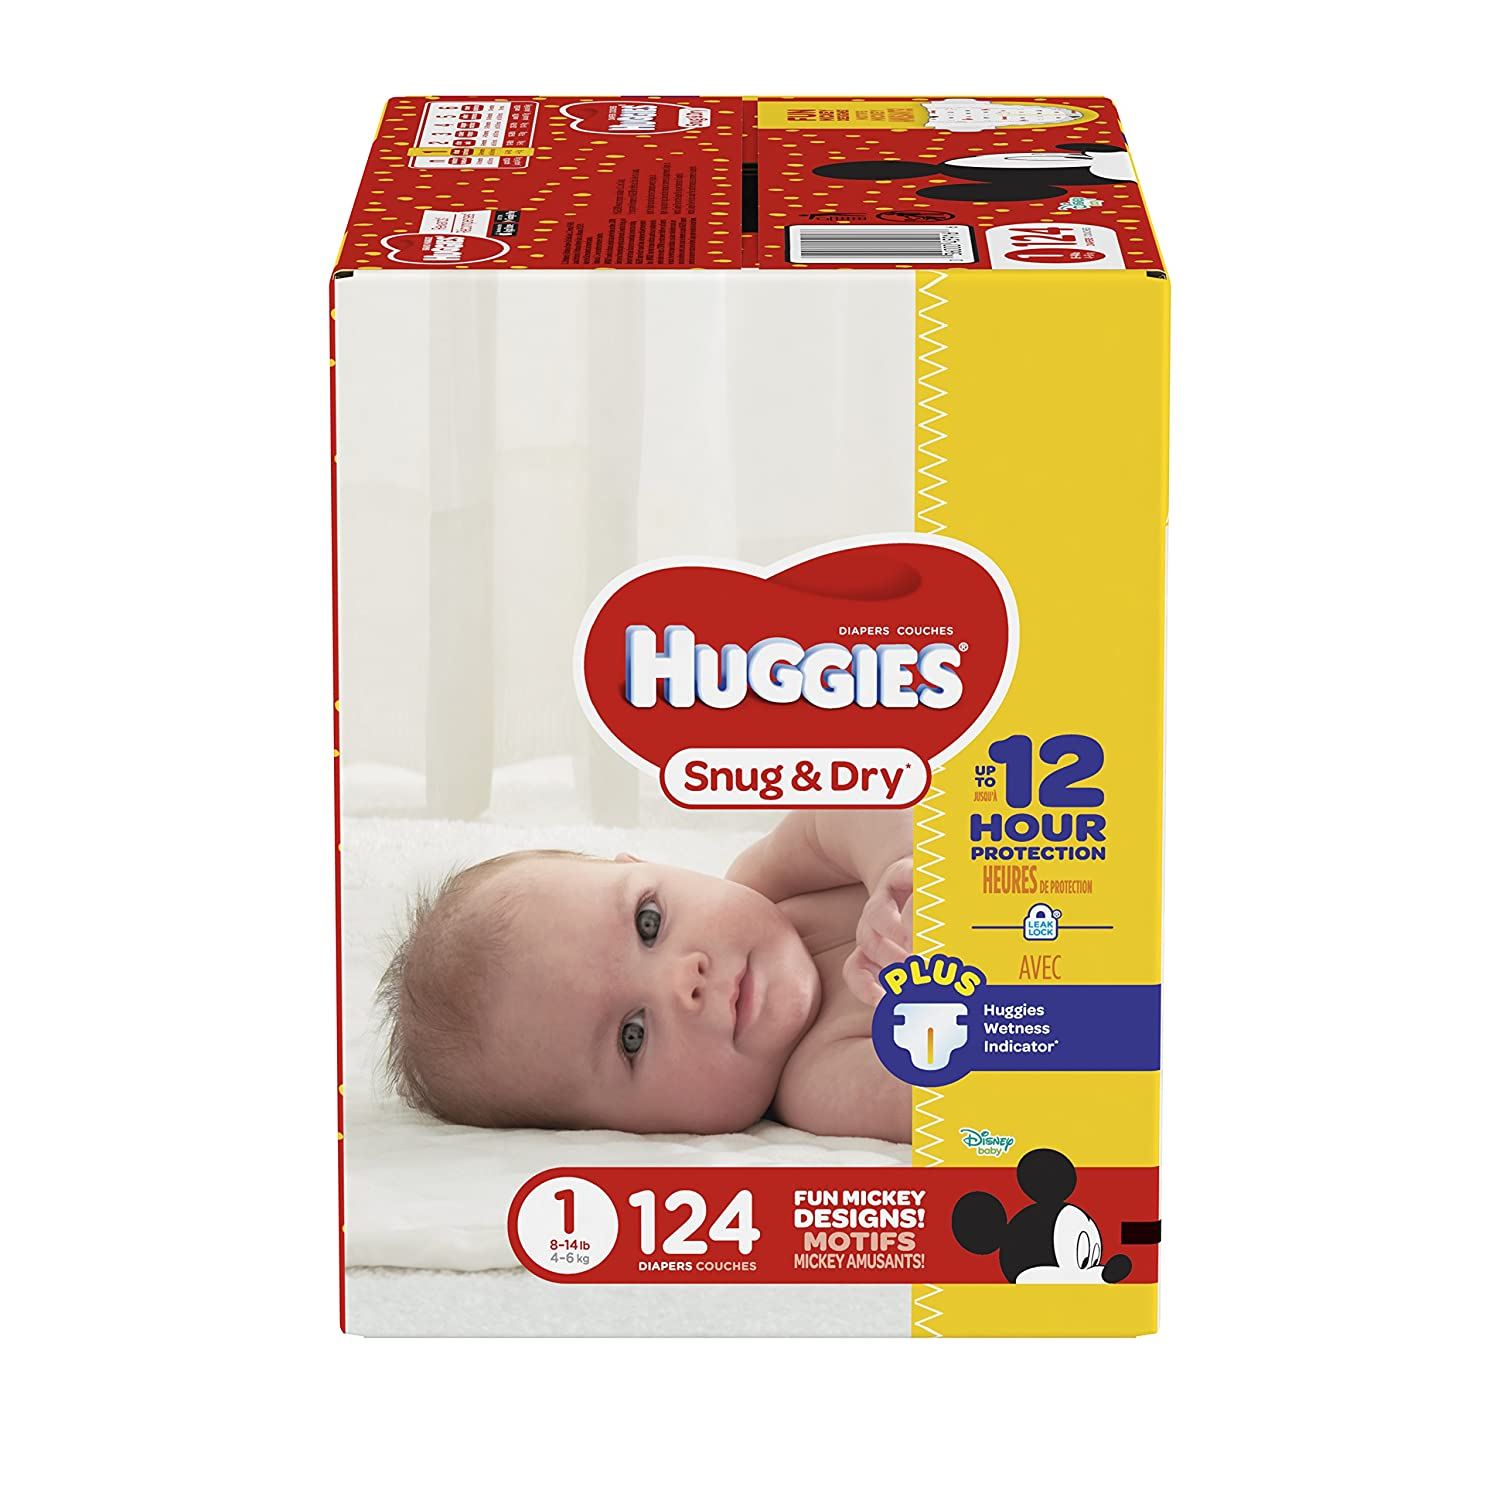 HUGGIES Snug & Dry Diapers, Size 1, 124 Count Kimberly-Clark Corp. CA